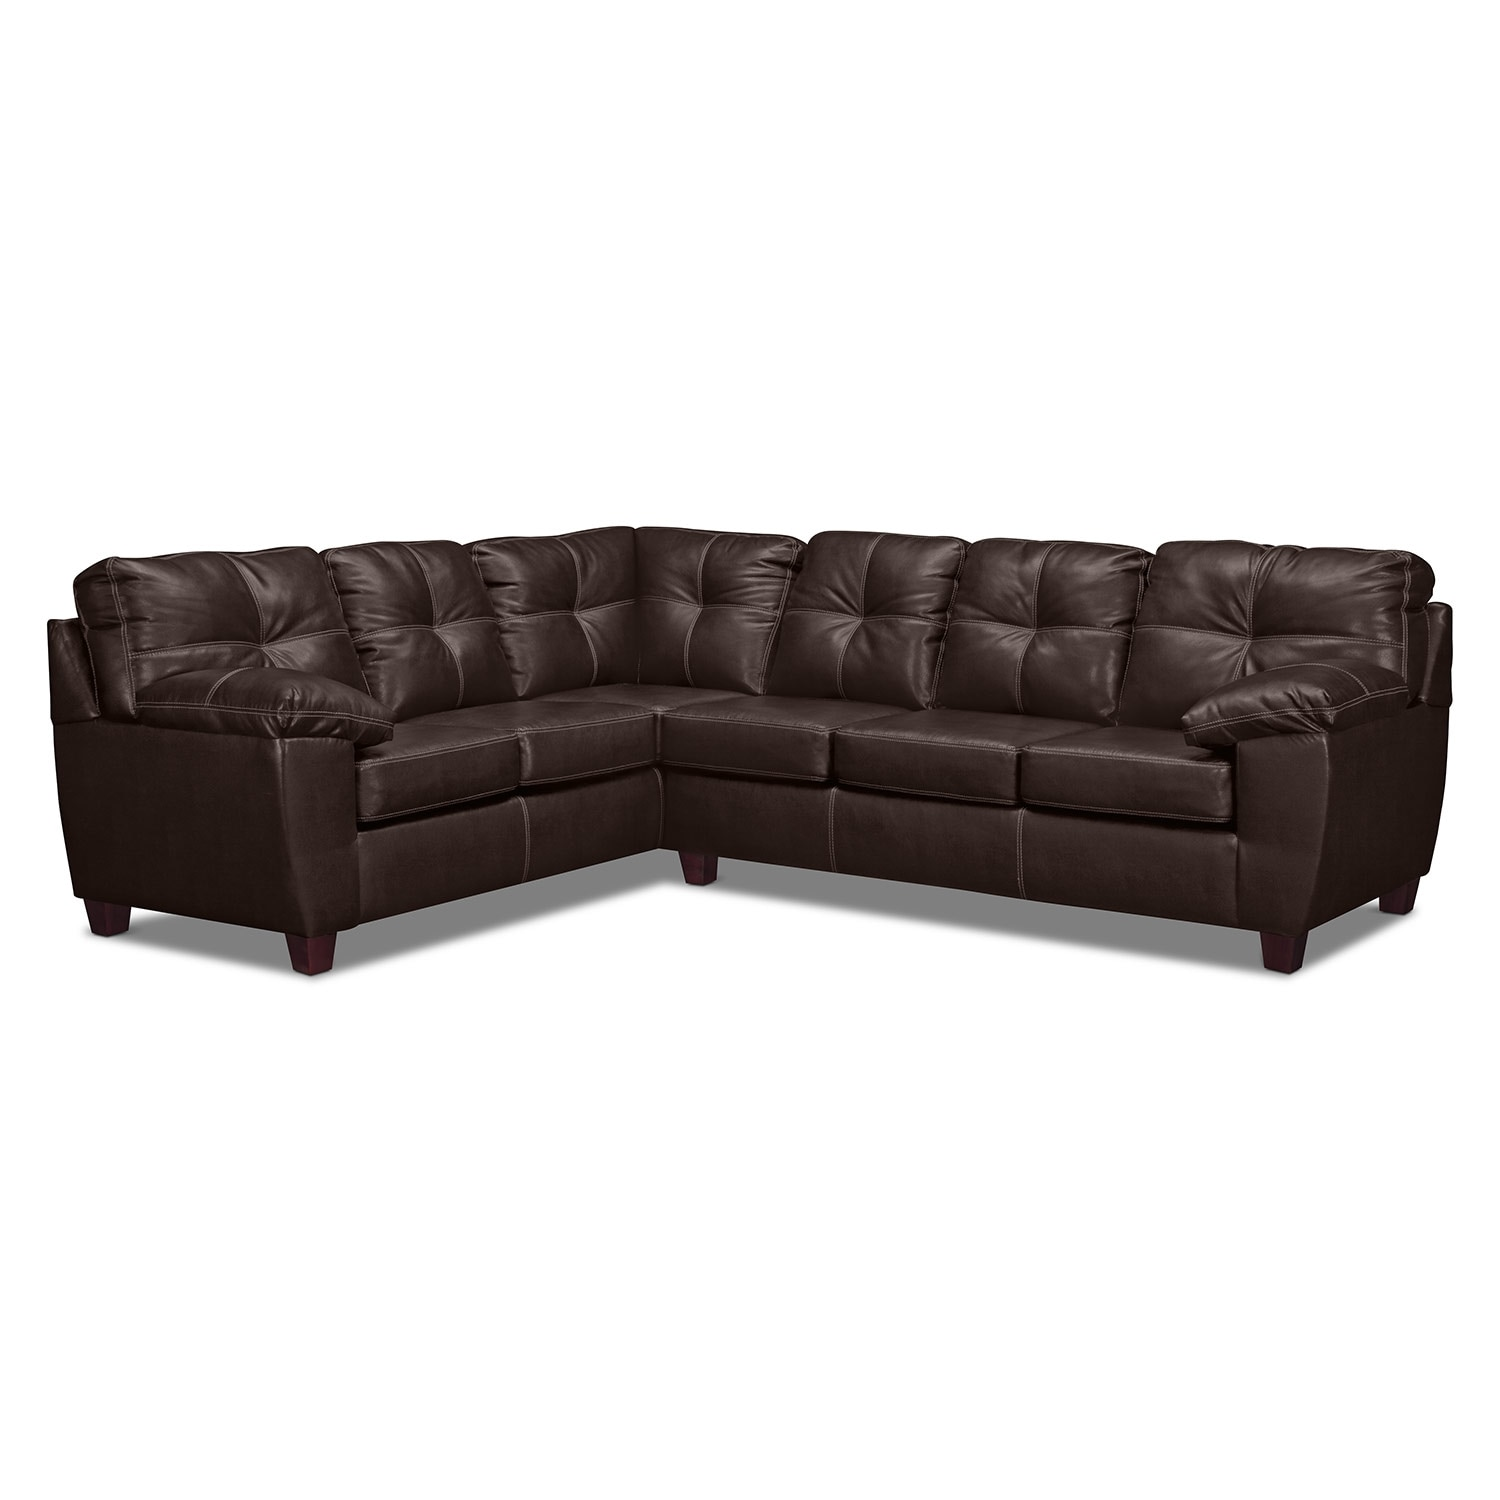 Rialto 2-Piece Sectional with Left-Facing Corner Sofa - Brown